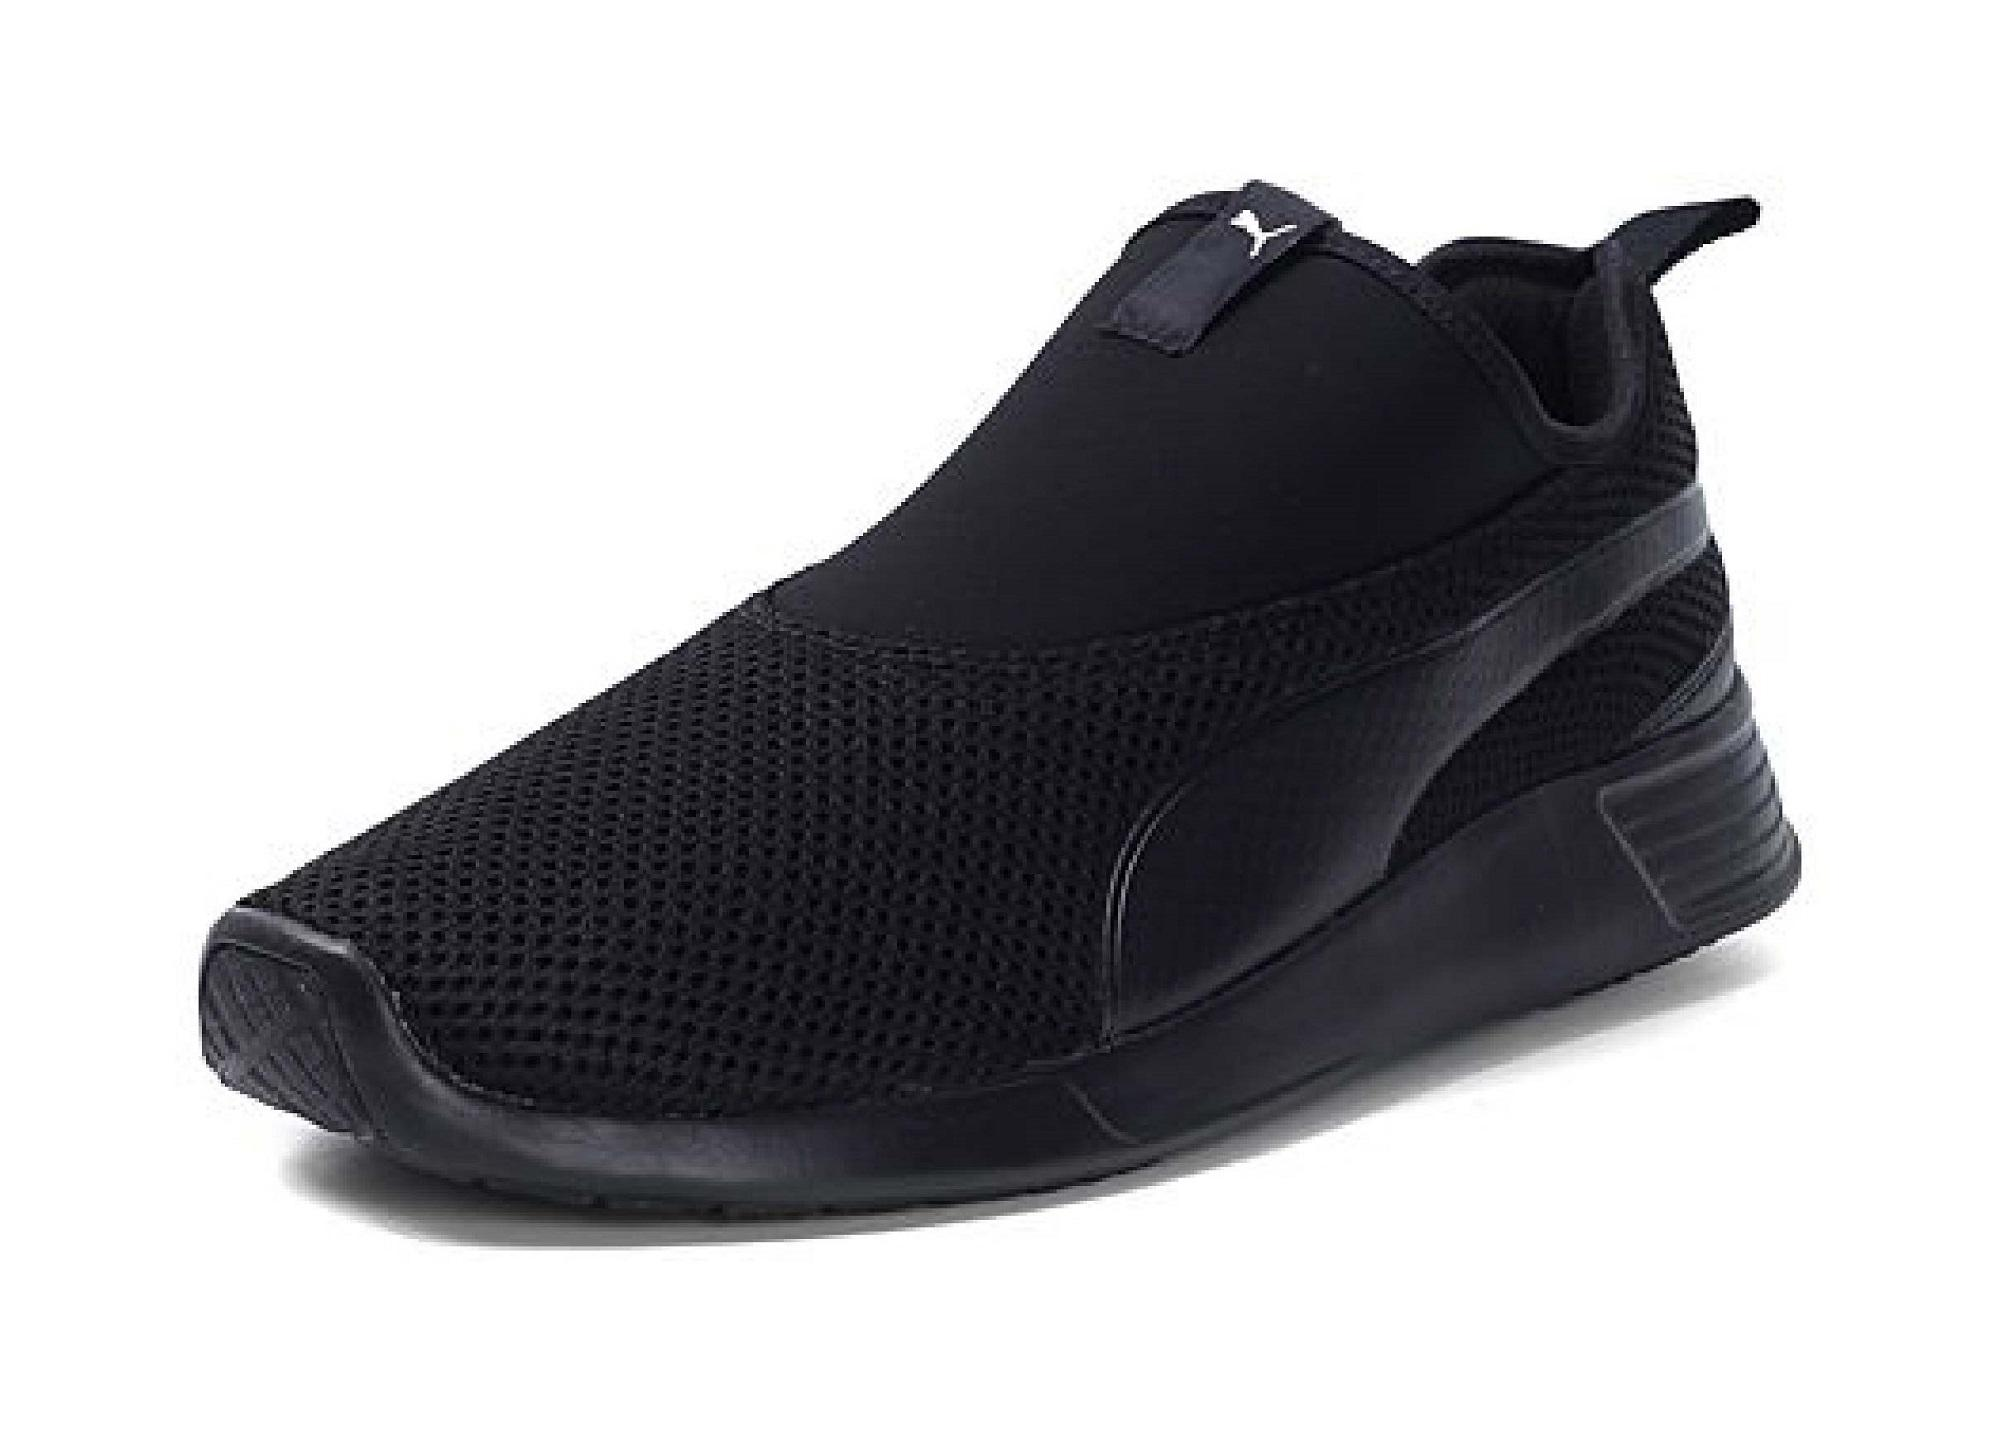 Puma sepatu training ST trainer Evo 2 slip on - 36374101 - hitam 96a66d6011